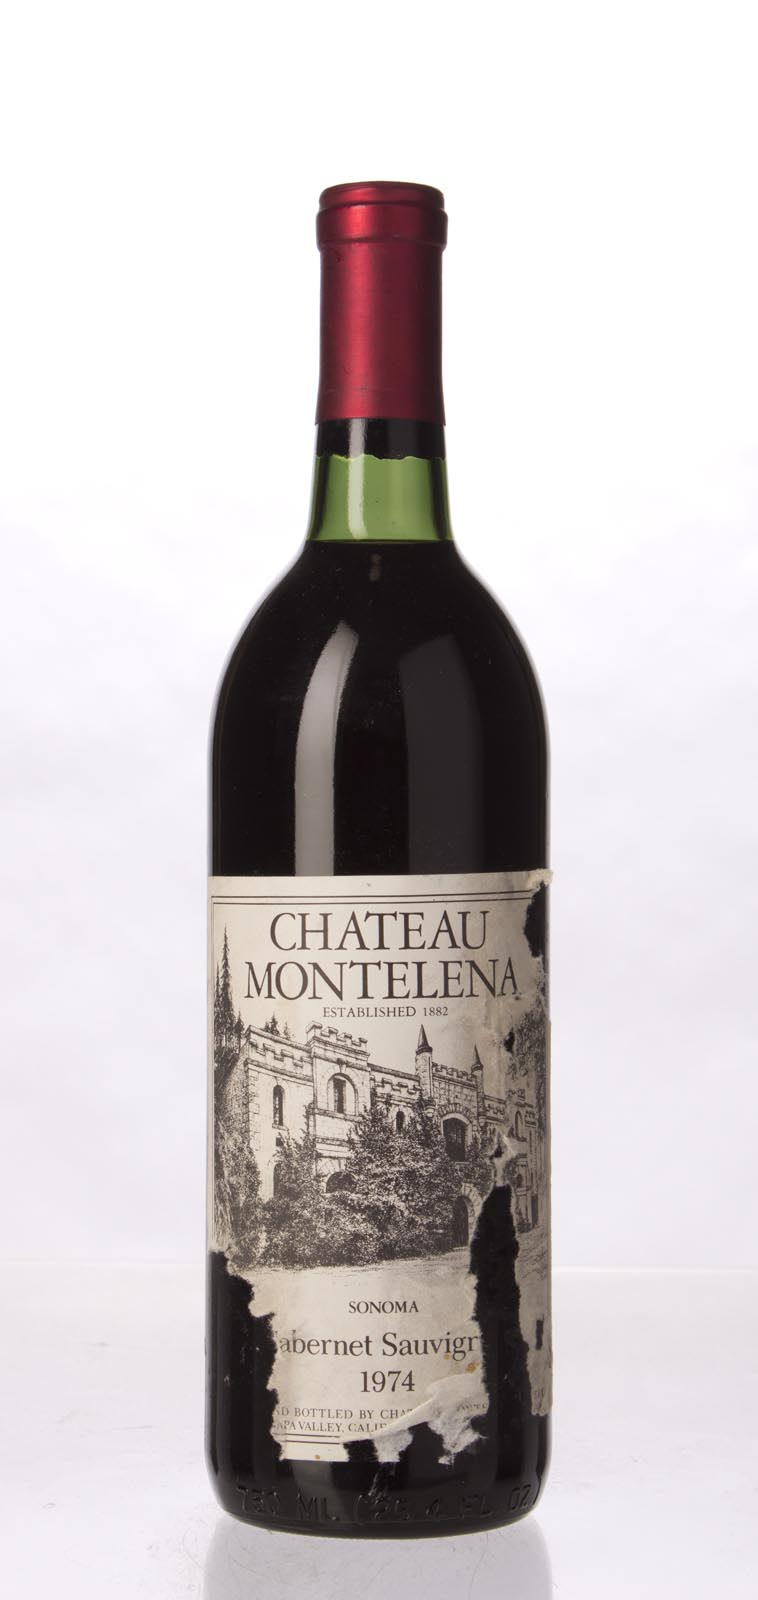 Chateau Montelena Cabernet Sauvignon Sonoma 1974, 750mL (WA91) from The BPW - Merchants of rare and fine wines.